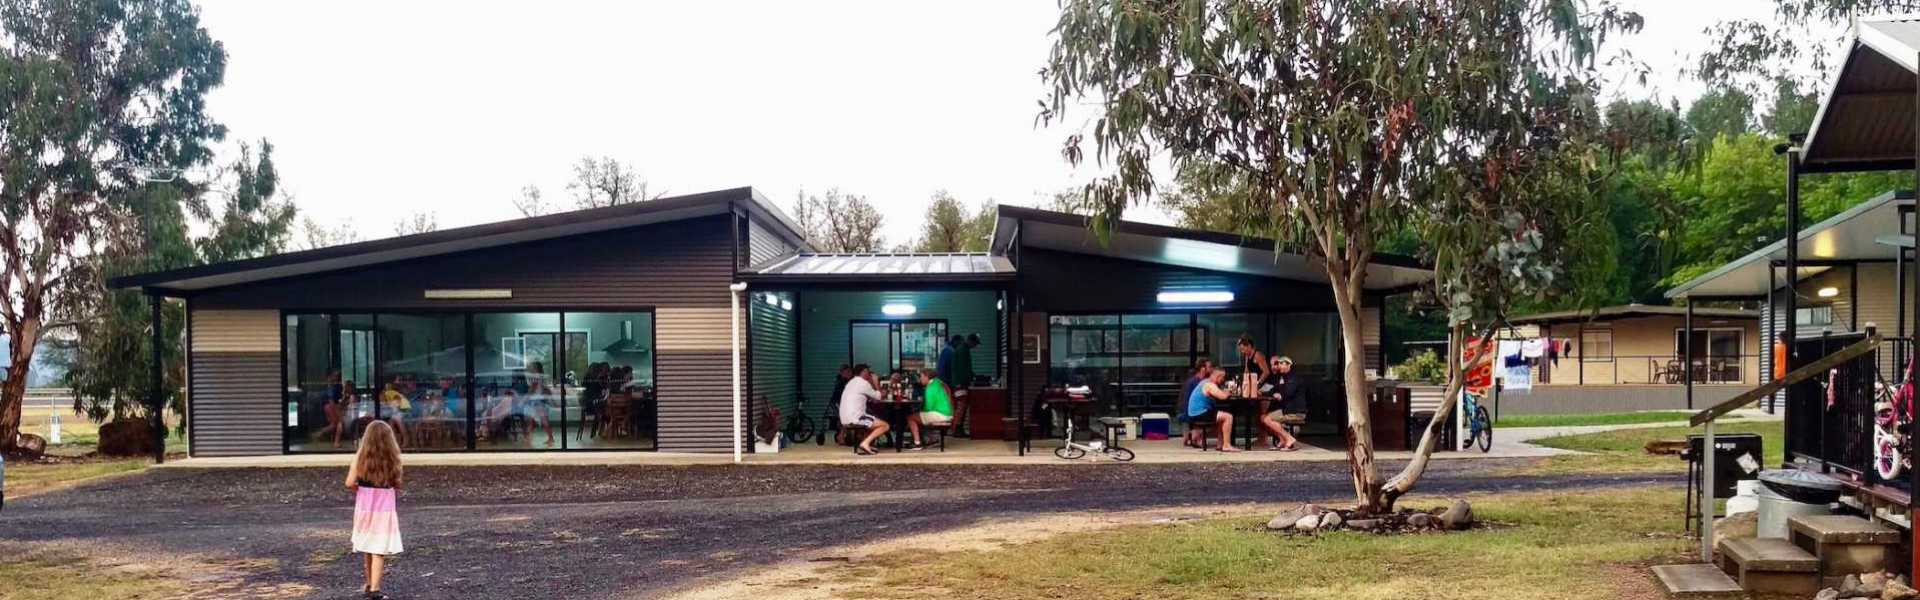 Kui Parks, Khancoban Lakeside Caravan Park, Camp Kitchen